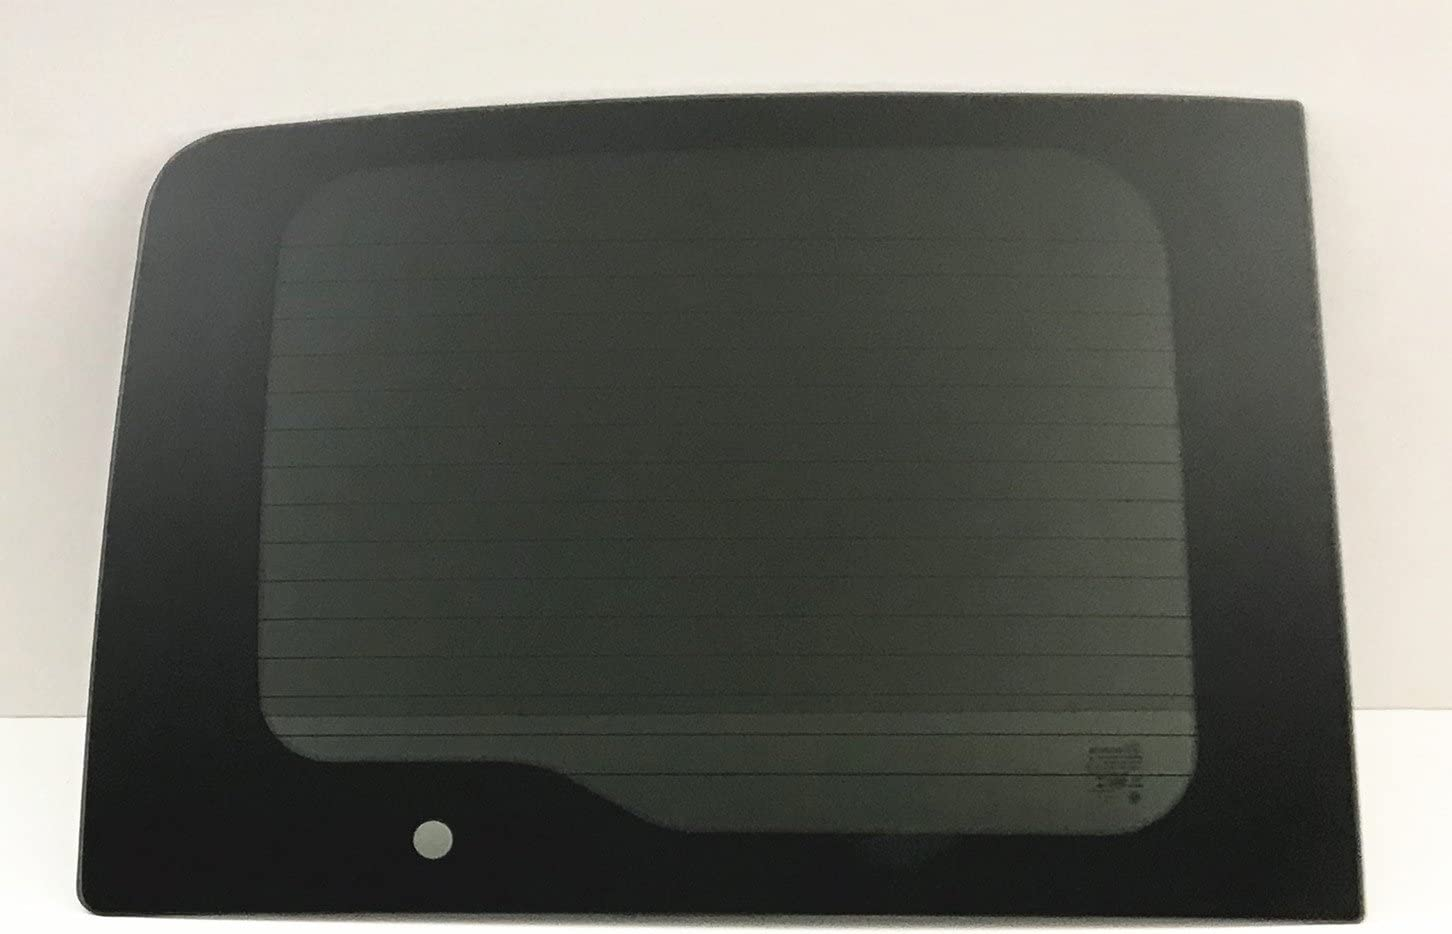 NAGD Fits 2015-2018 Ram Promaster City Van Driver Left Side Back Window Glass Non-Heated